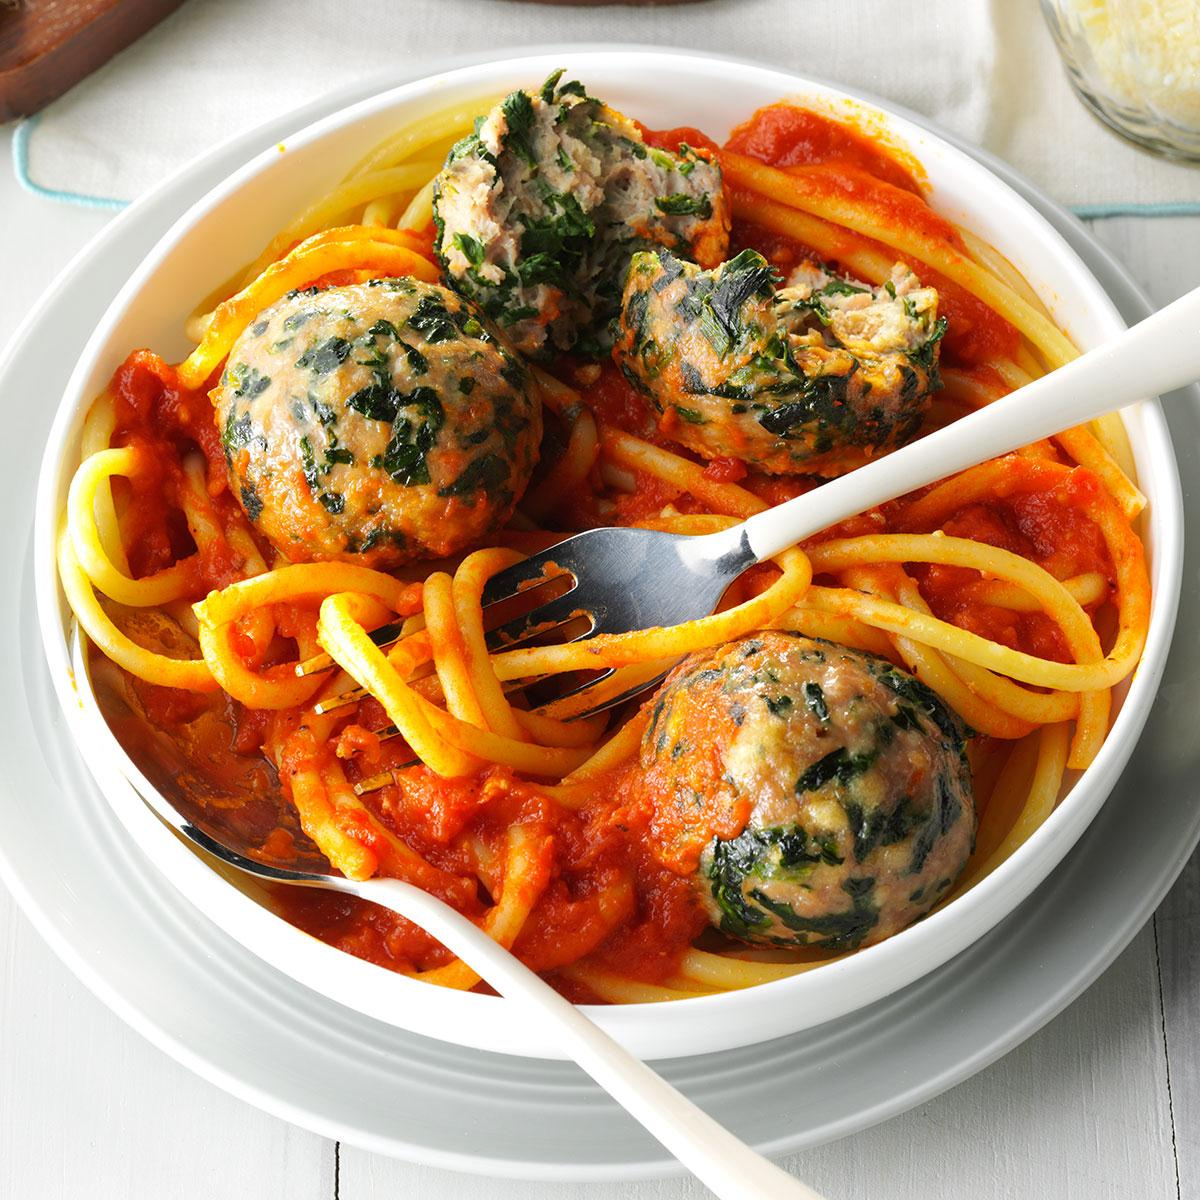 Spinach turkey meatballs recipe taste of home for Baked pasta with meatballs and spinach